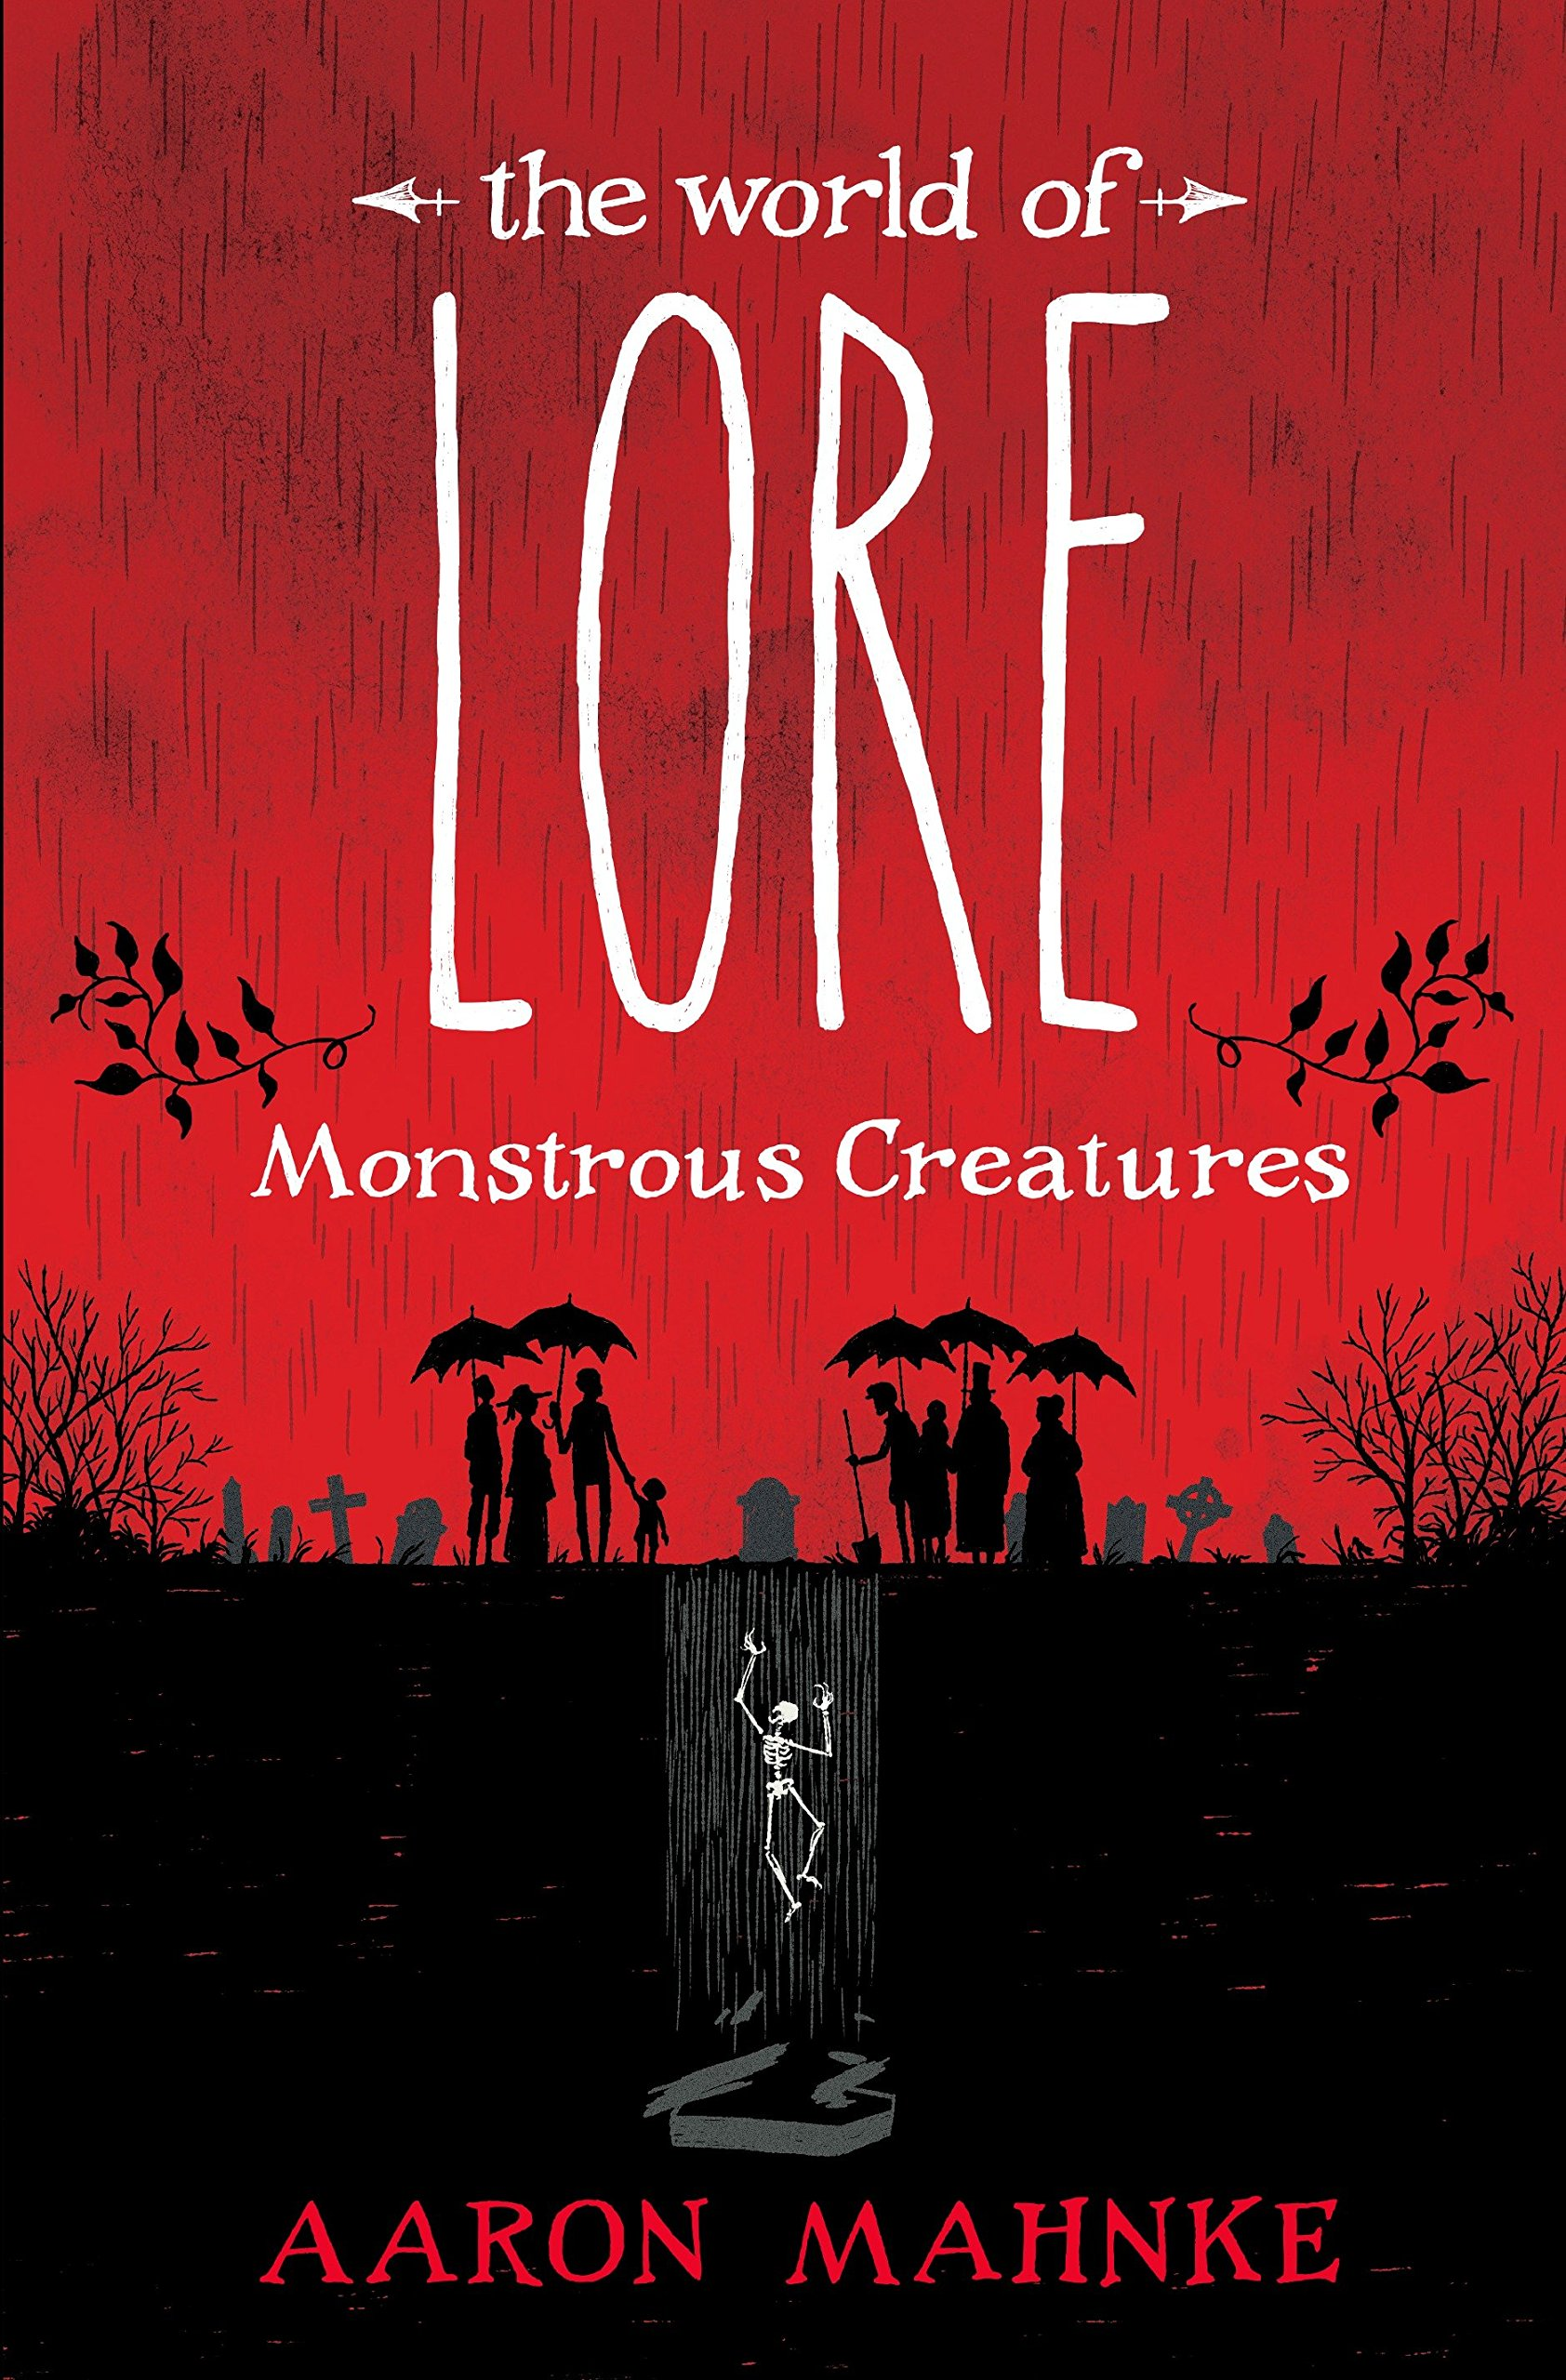 Image result for world of lore monstrous creatures